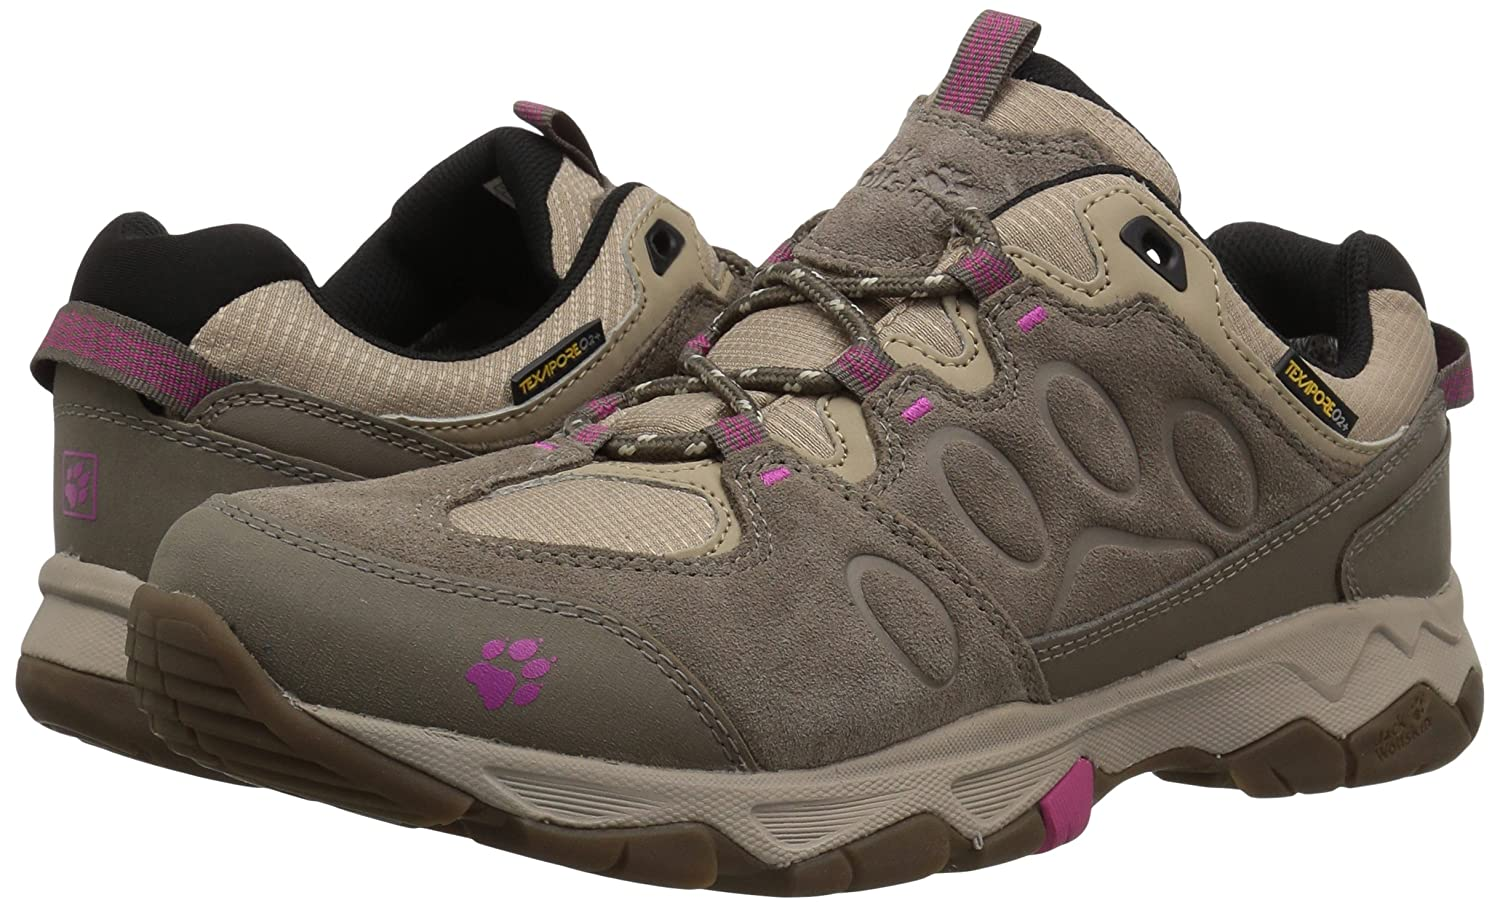 Jack Wolfskin Women's MTN Attack 5 Texapore Low W Hiking Boot B073ZJF523 US Women's 6 D US|Fuchsia